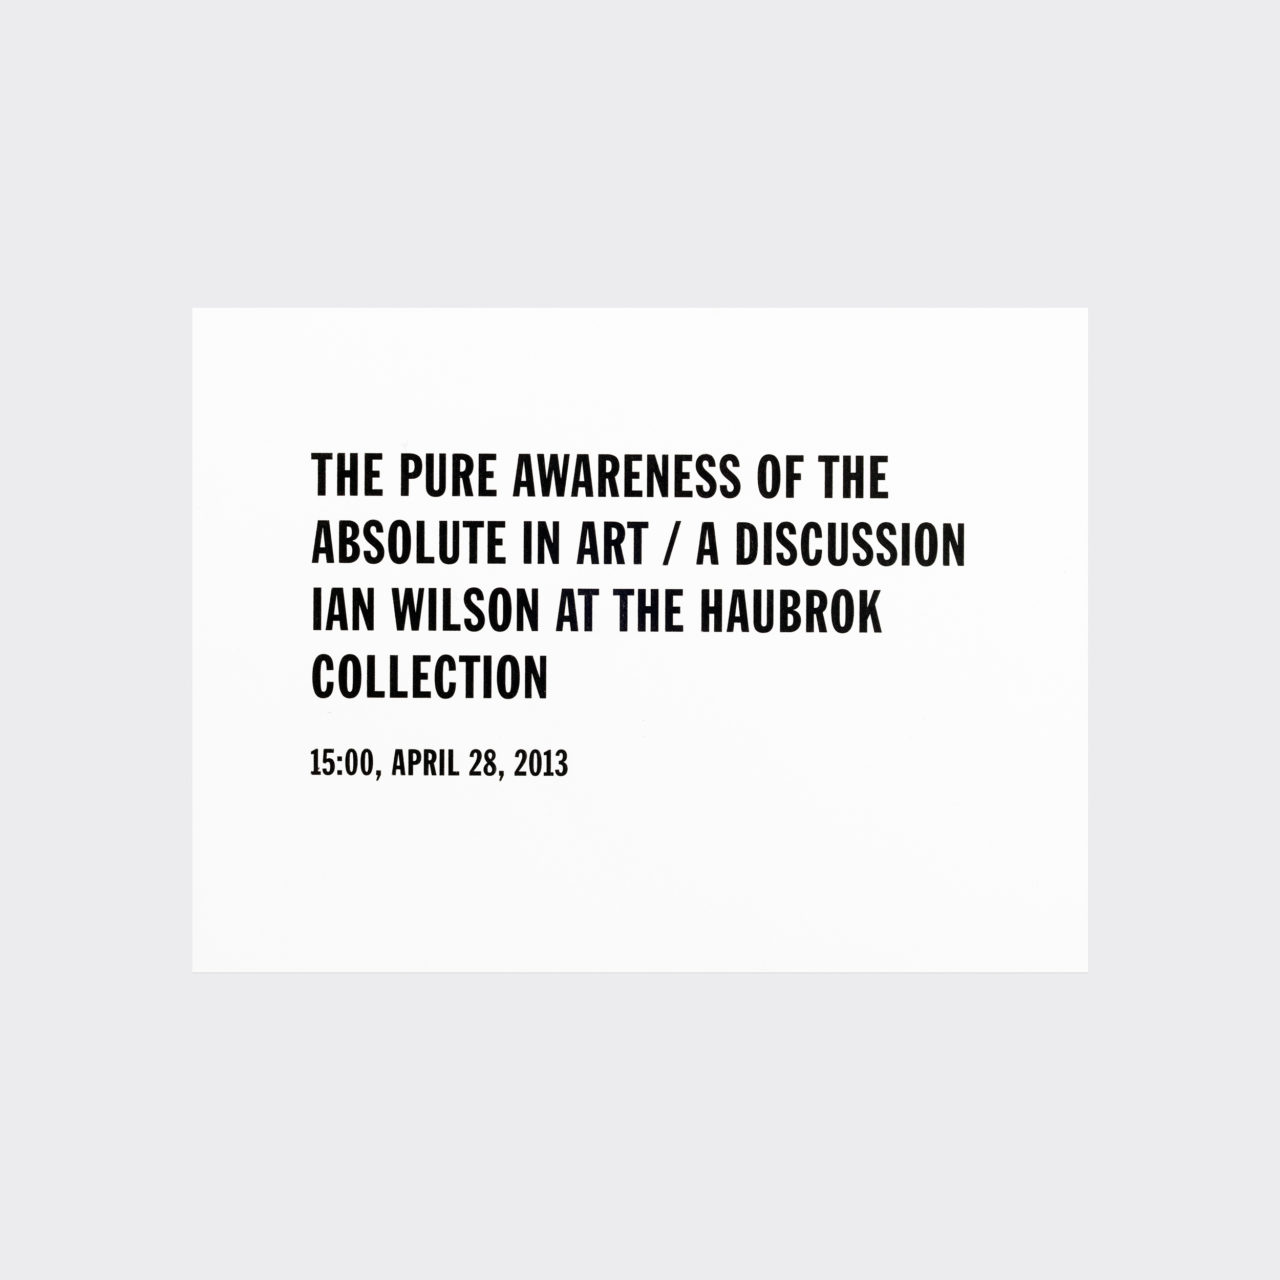 Ian Wilson, The pure awareness of the absolute in art (announcement card) (2013)